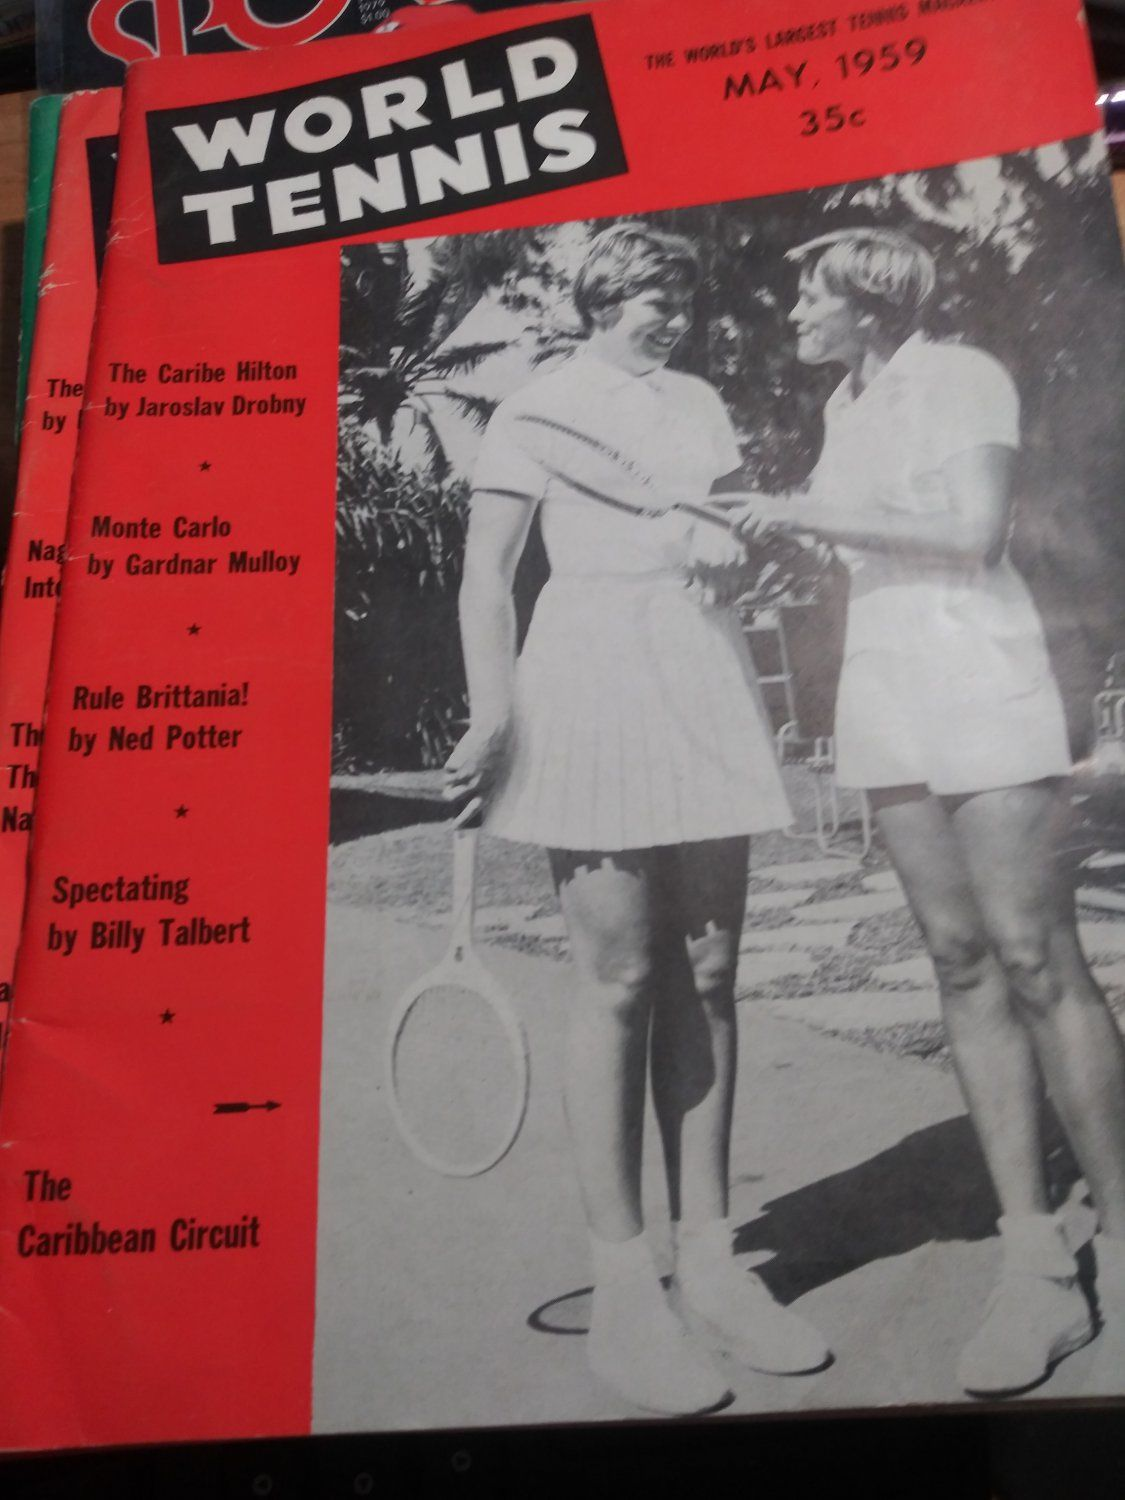 World Tennis Magazine May 1959 In 2020 Tennis Magazine Sports Illustrated Kids Tennis